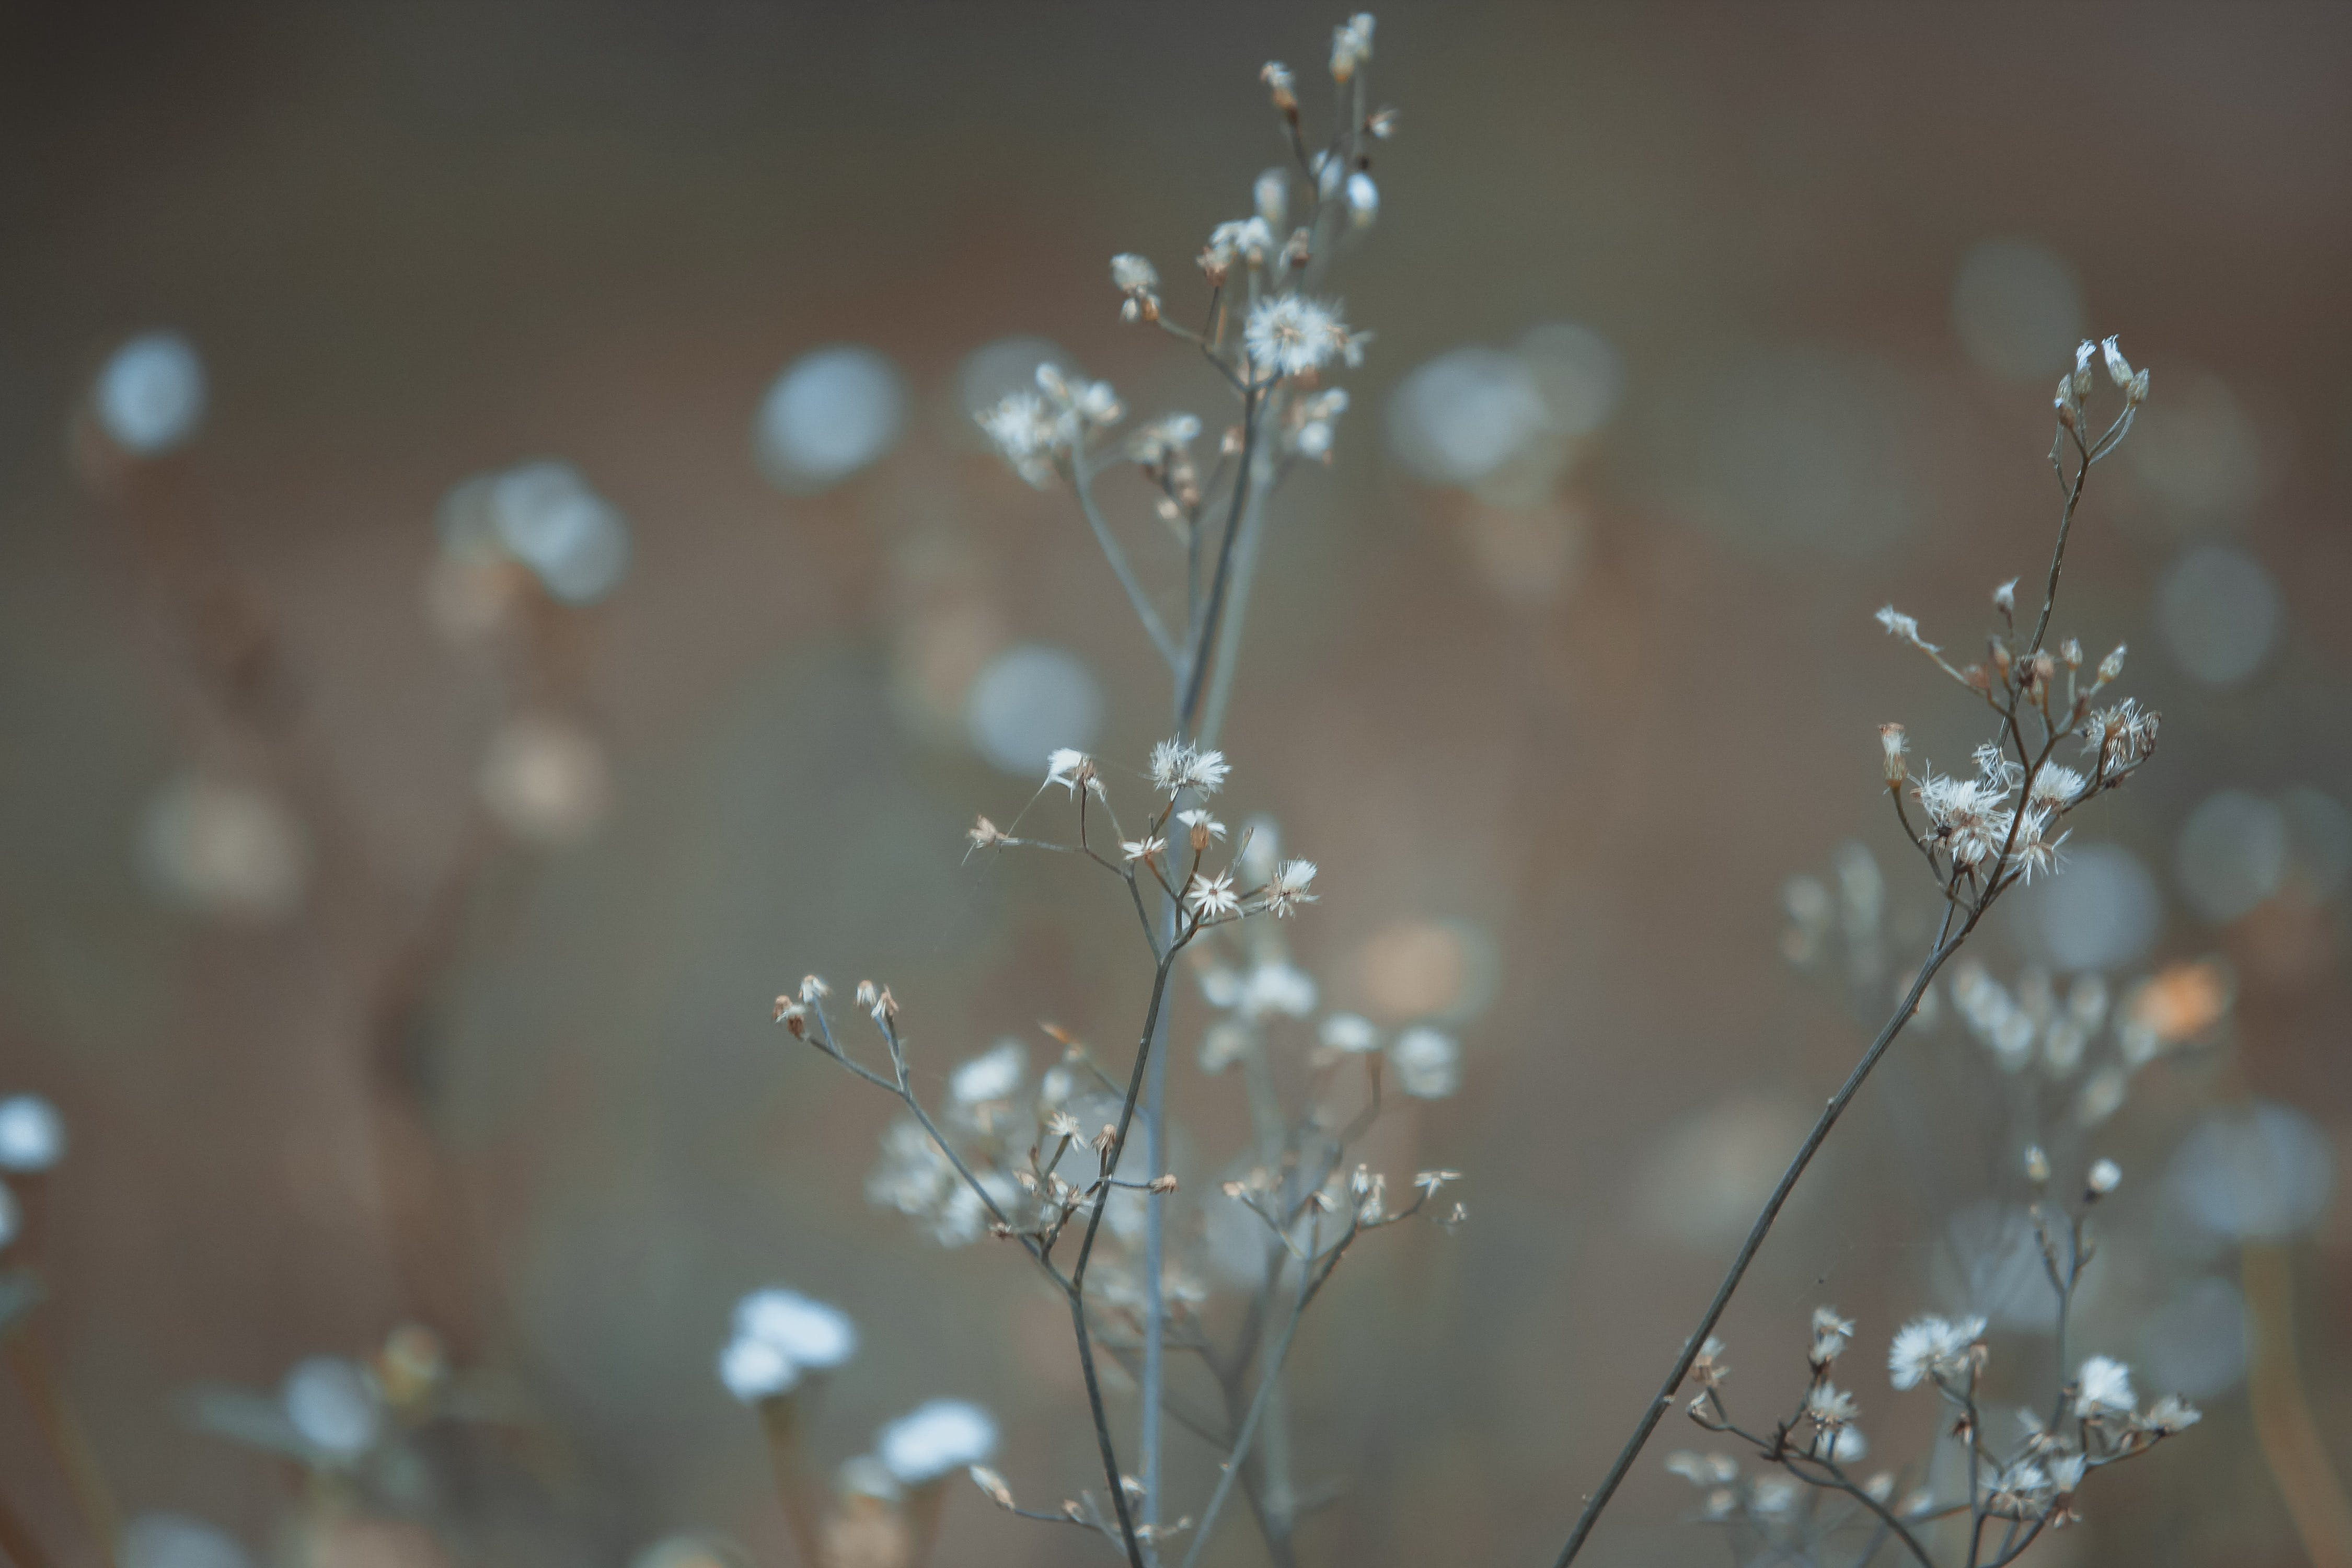 White Baby's Breath Flower in Focus Photography